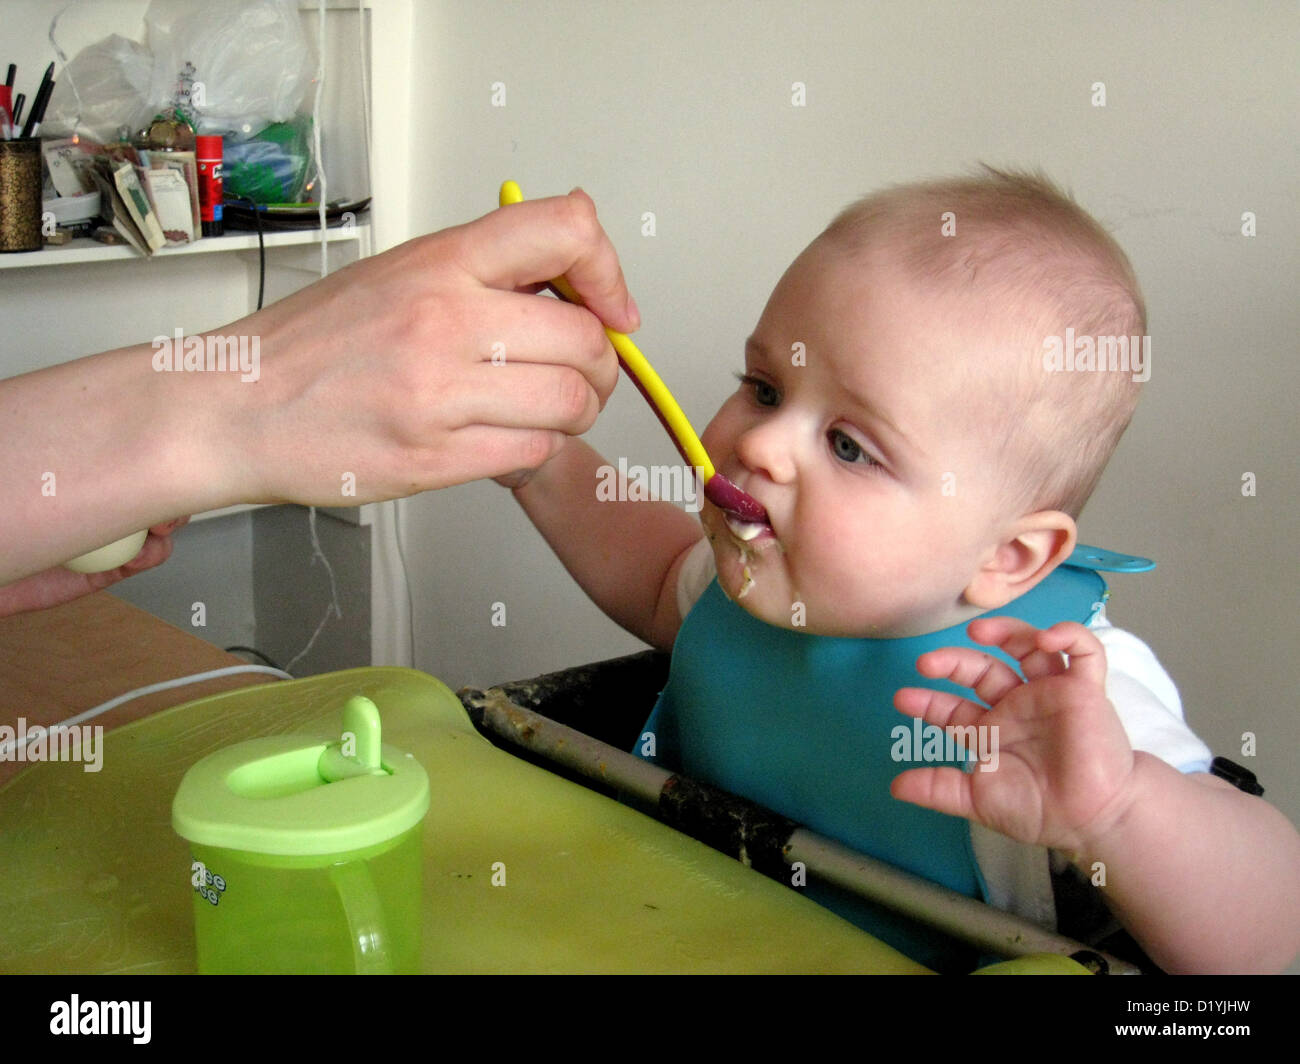 six month old baby being spoon fed - Stock Image